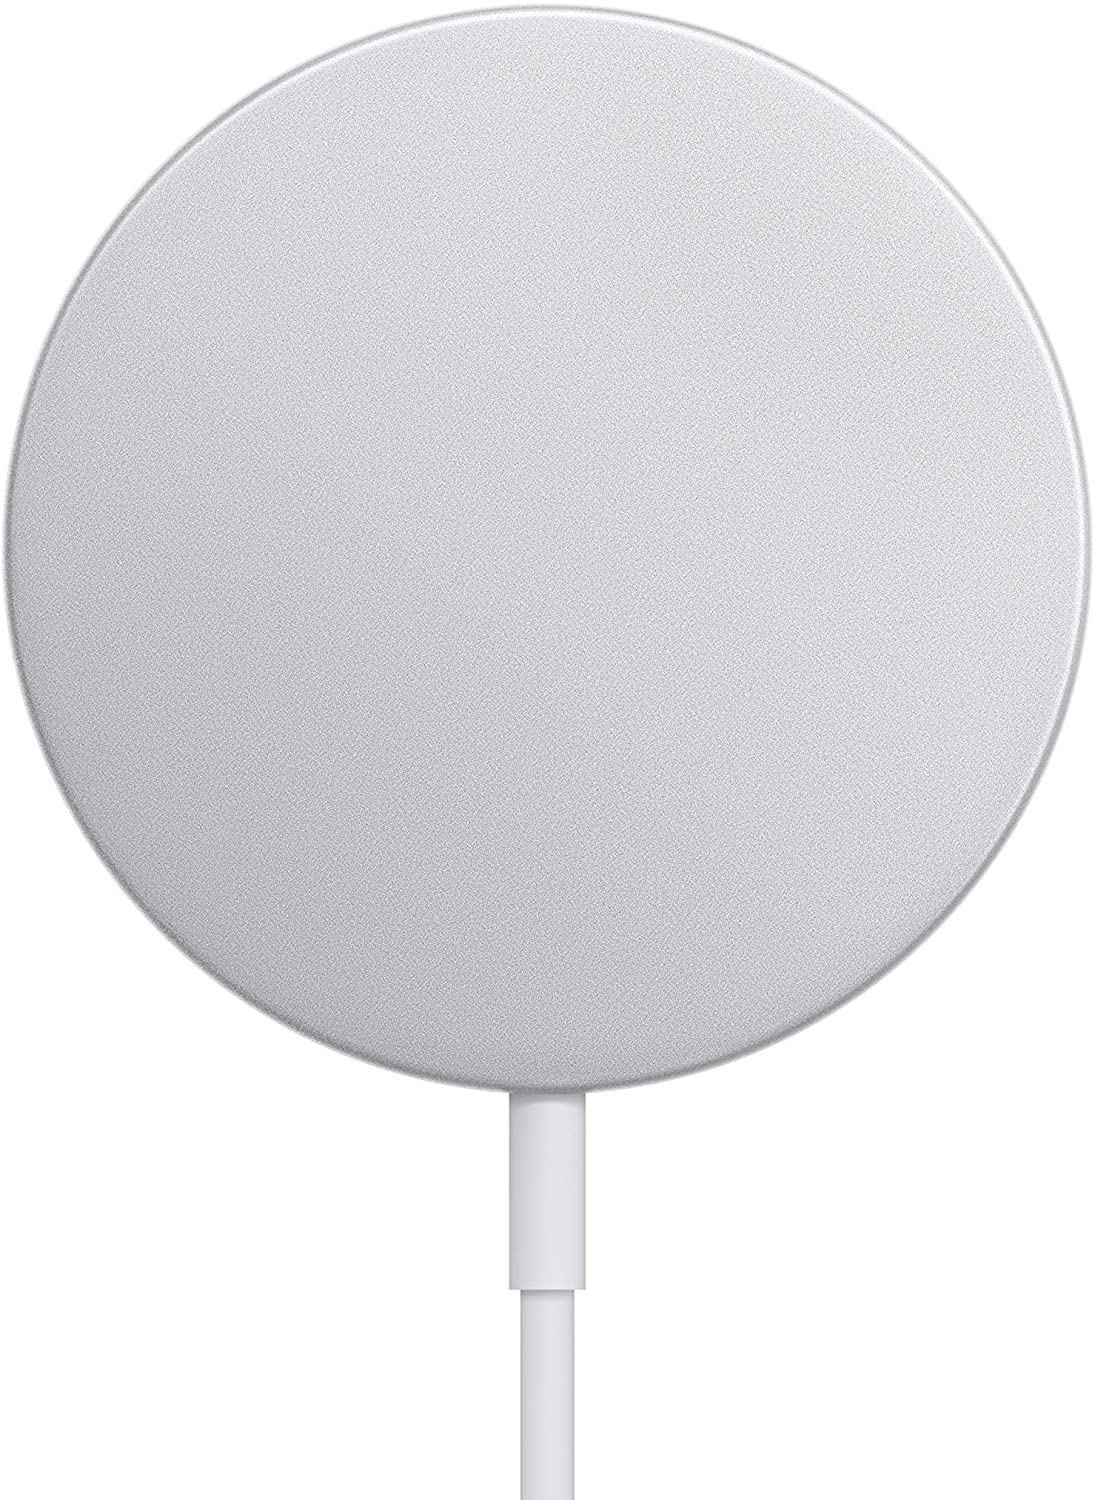 iPhone 12 pro max wireless charger